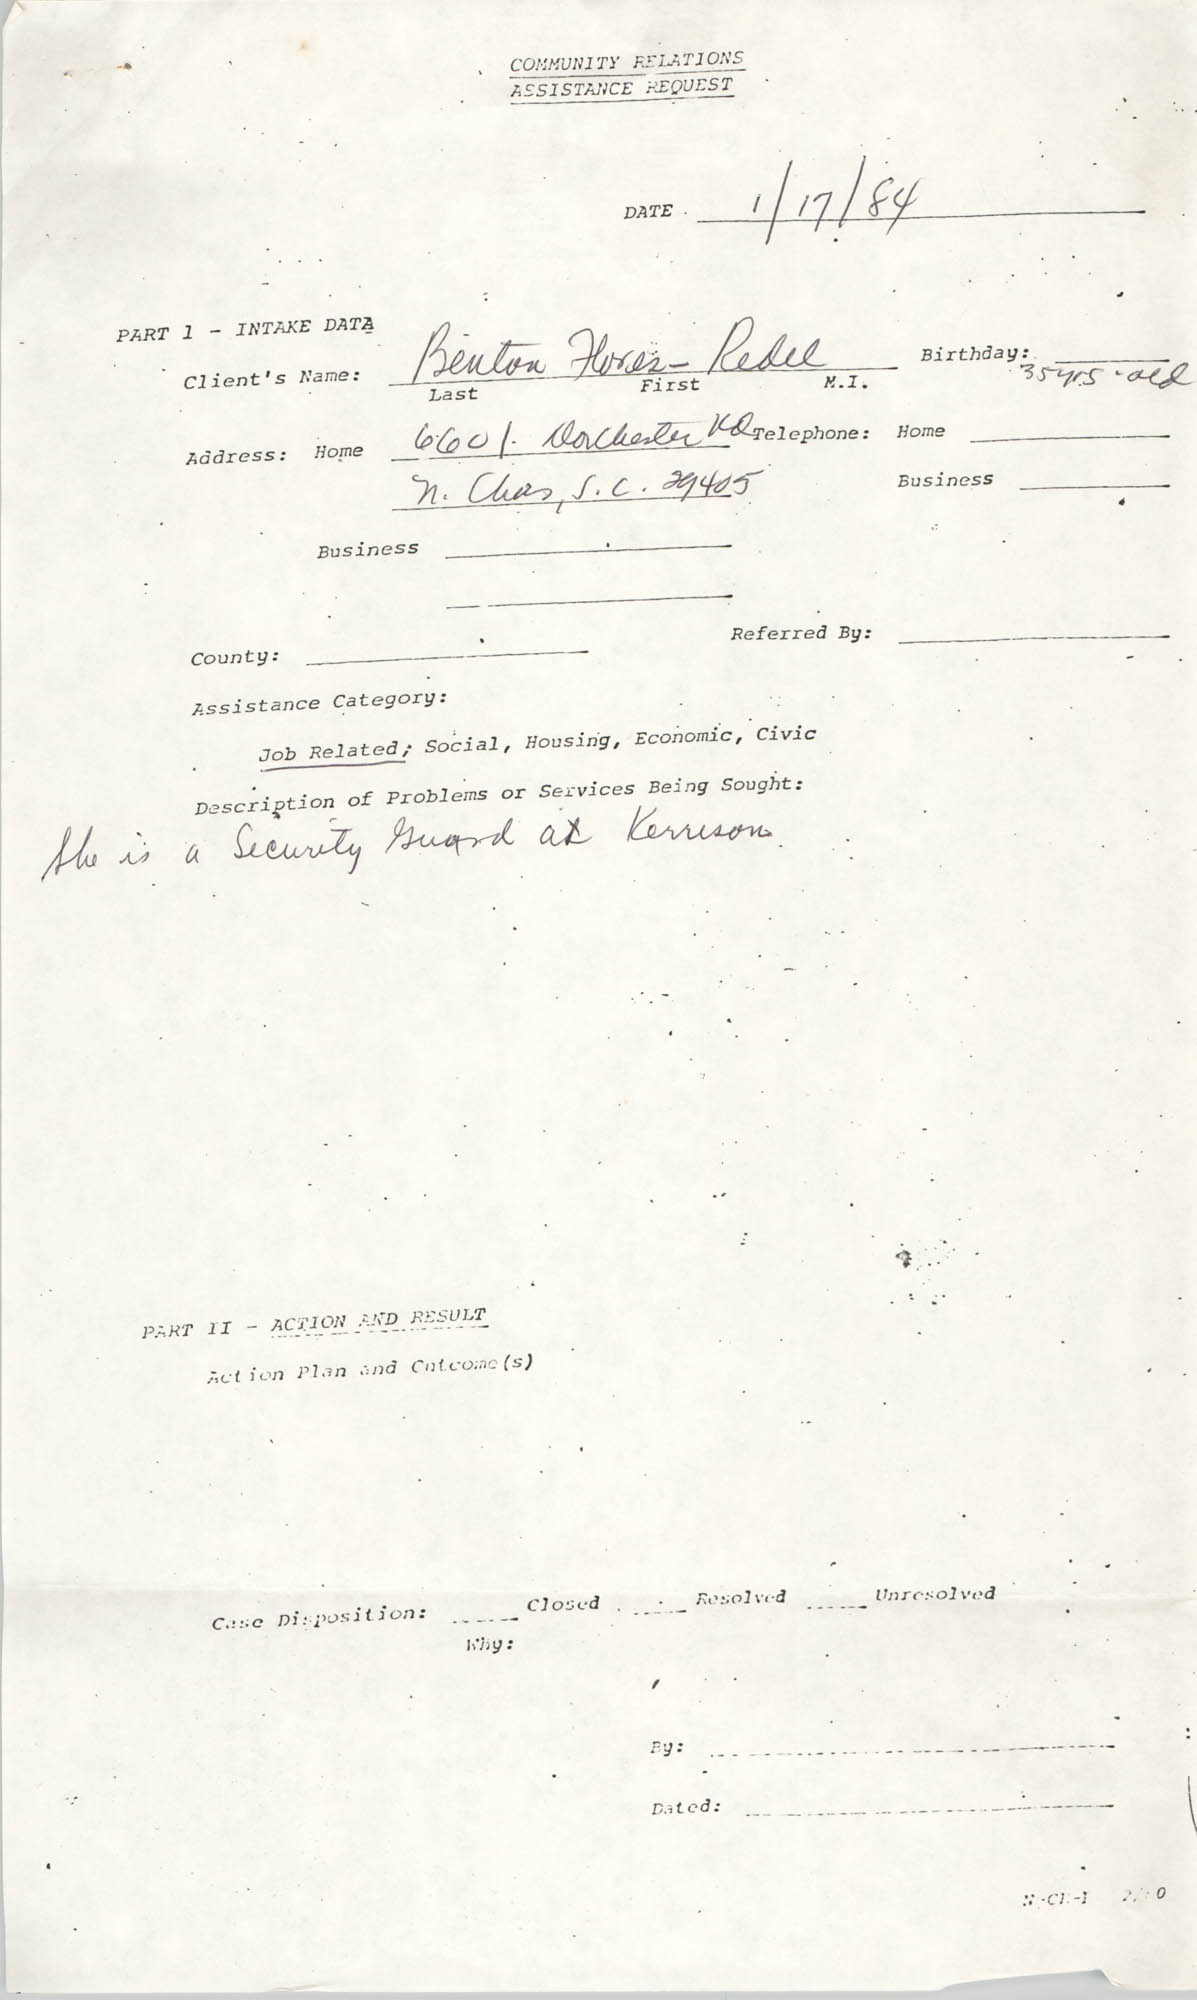 Community Relations Assistance Request, January 17, 1984